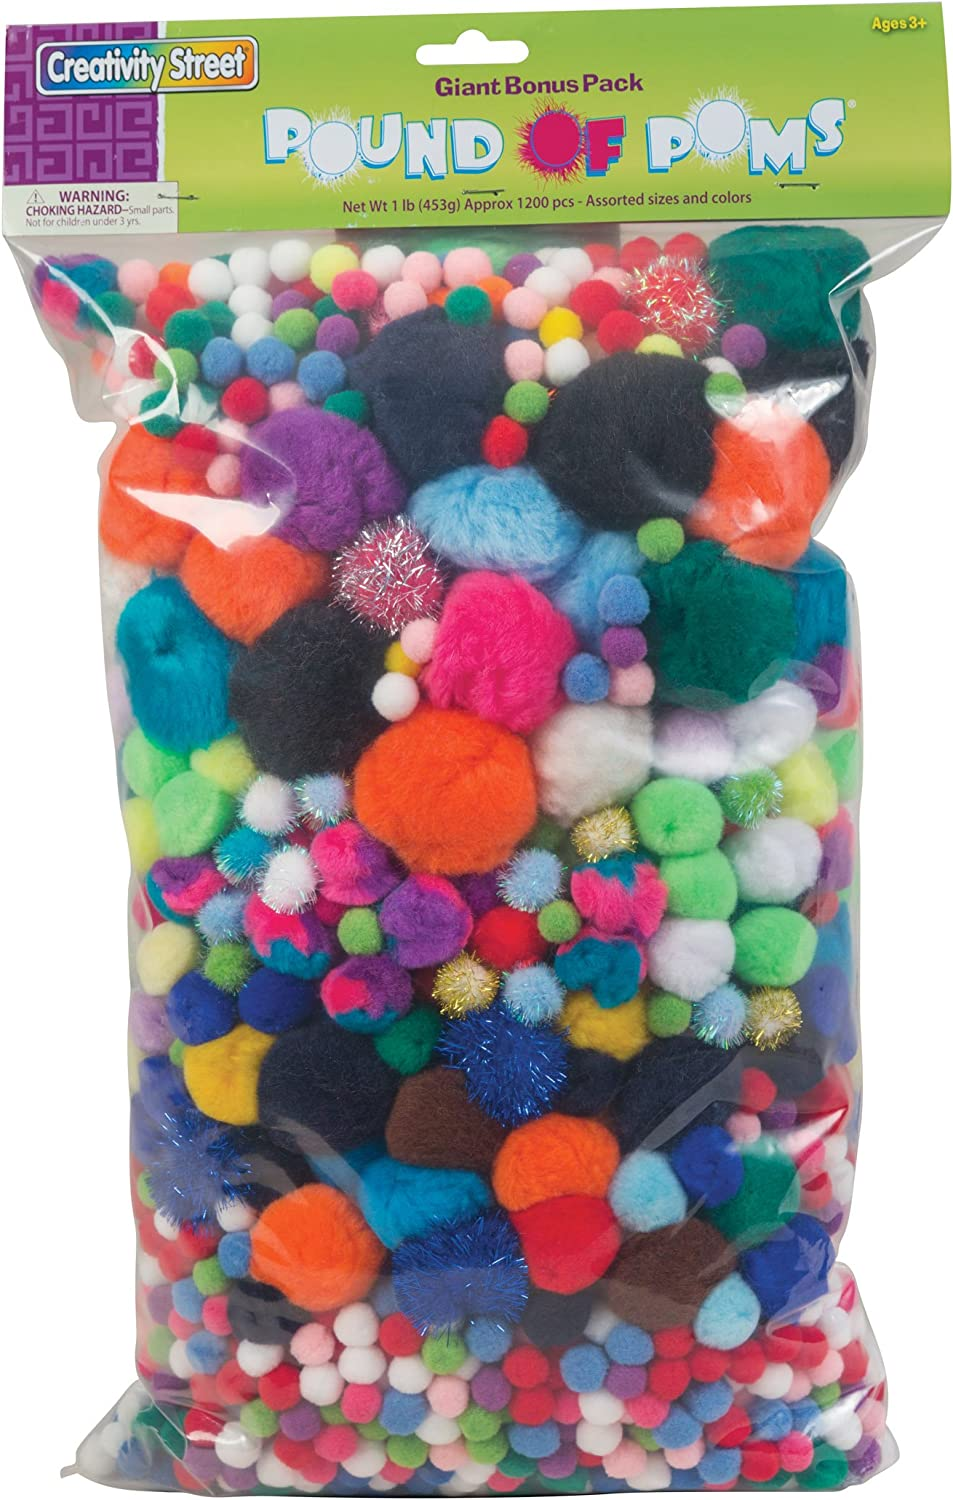 B0000C0XP2 Creativity Street Acrylic Non-Toxic Pom Pon Classroom Pack, Assorted Size, Assorted Color, Pack of 1200 81fpGt2bg-L